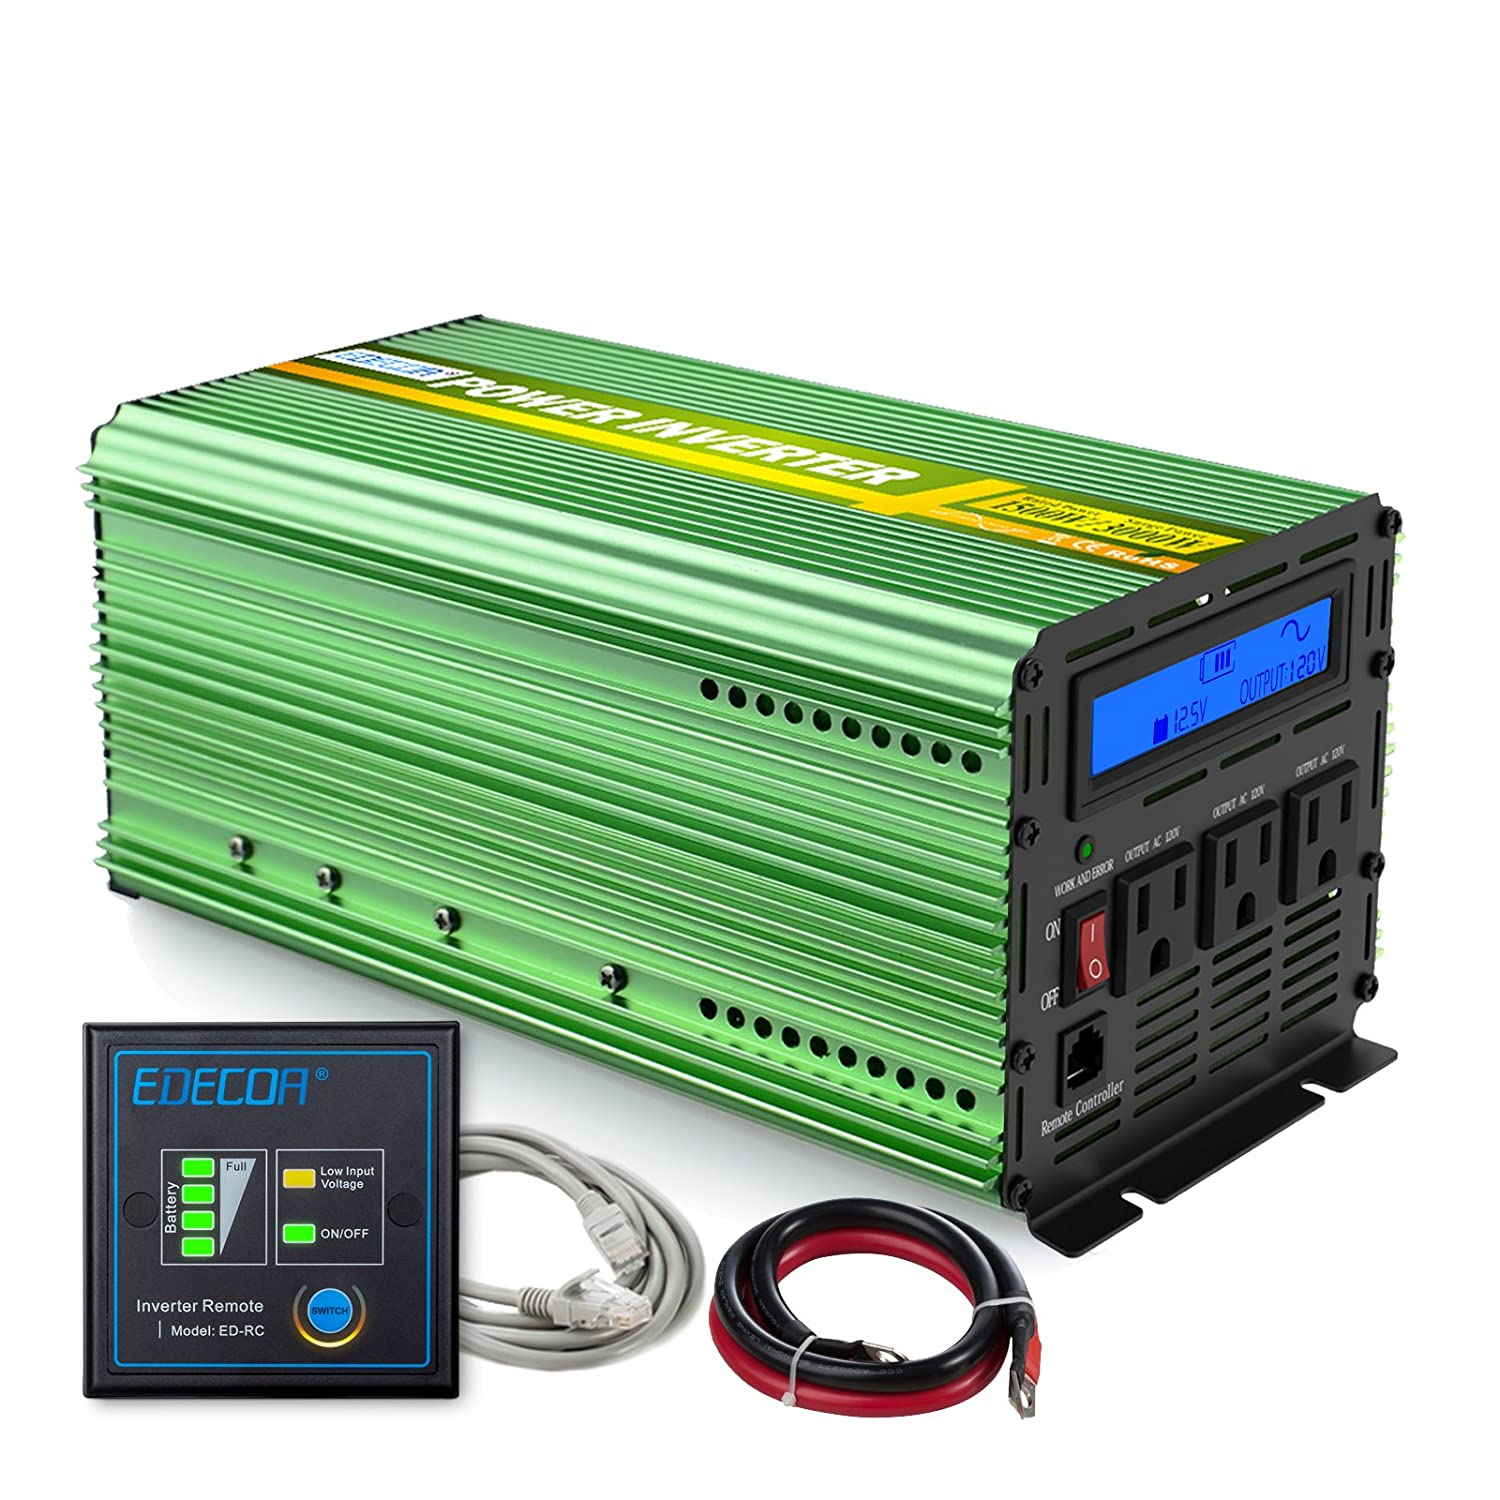 Edecoa Pure Sine Wave Power Inverter 1500w Peak 3000w Dc 1990 Dodge Ram Fuse Box 12v To 110v Ac With Lcd Display And Remote Car Electronics